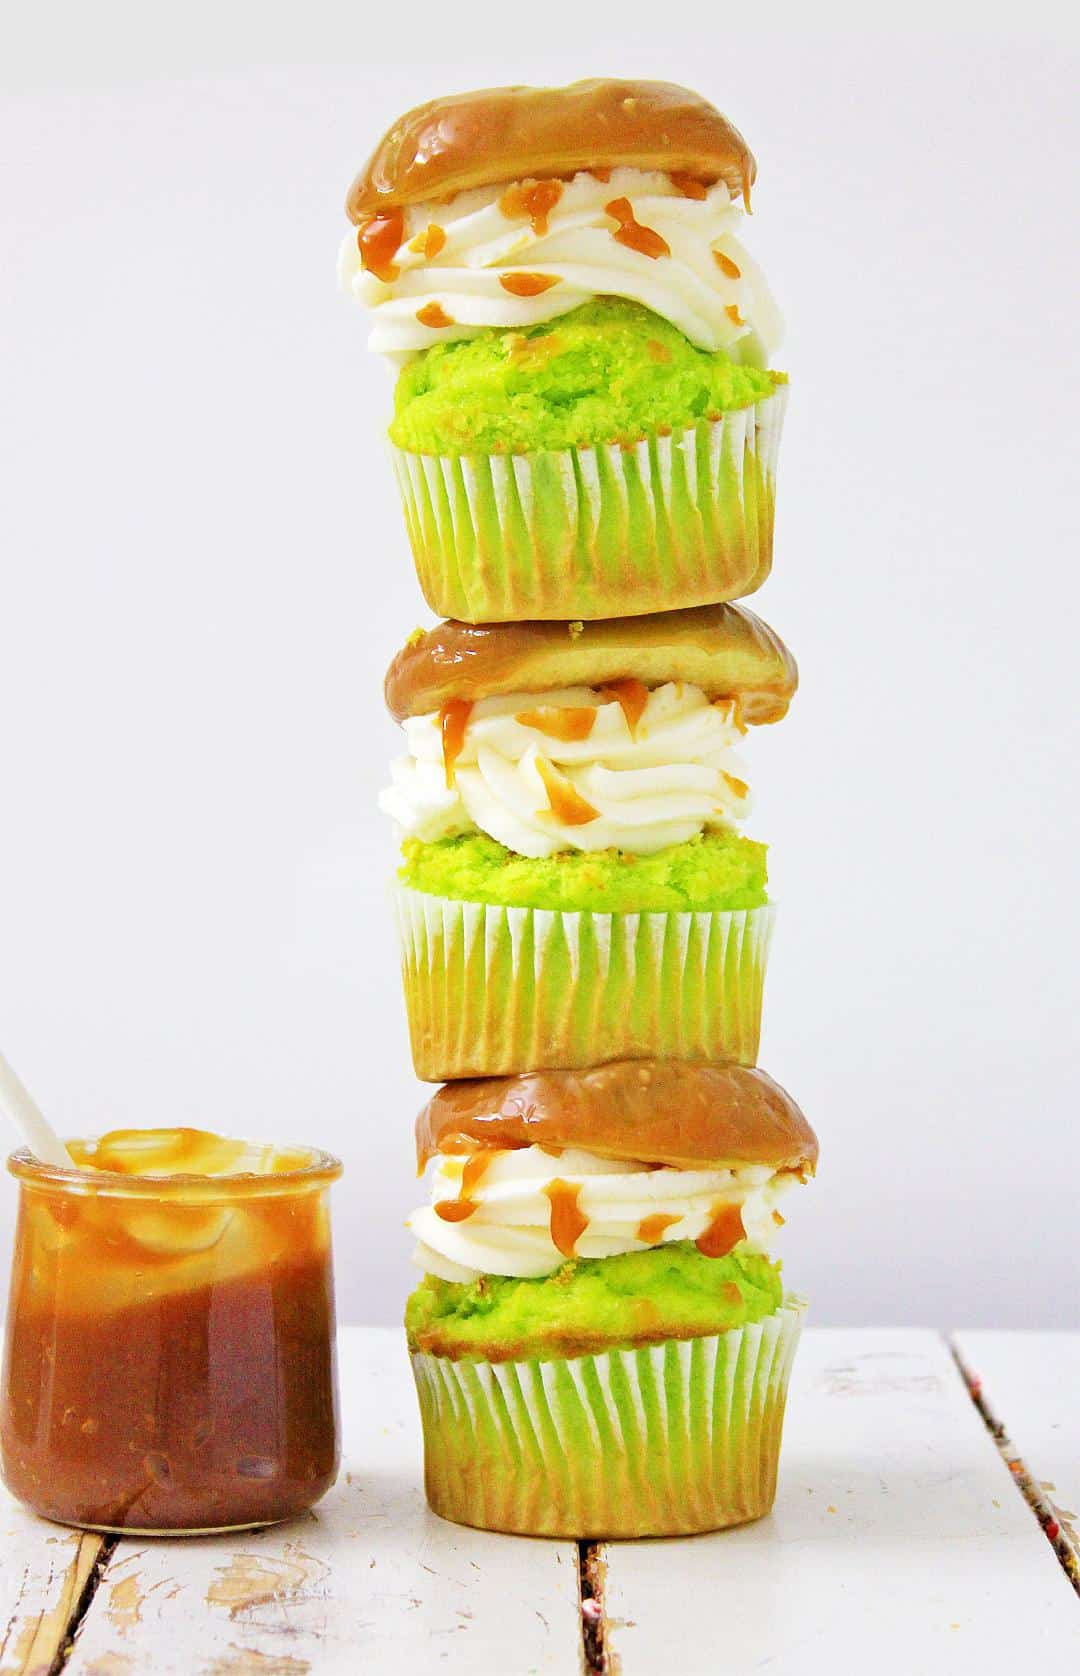 Stack of delicious caramel apple cupcakes